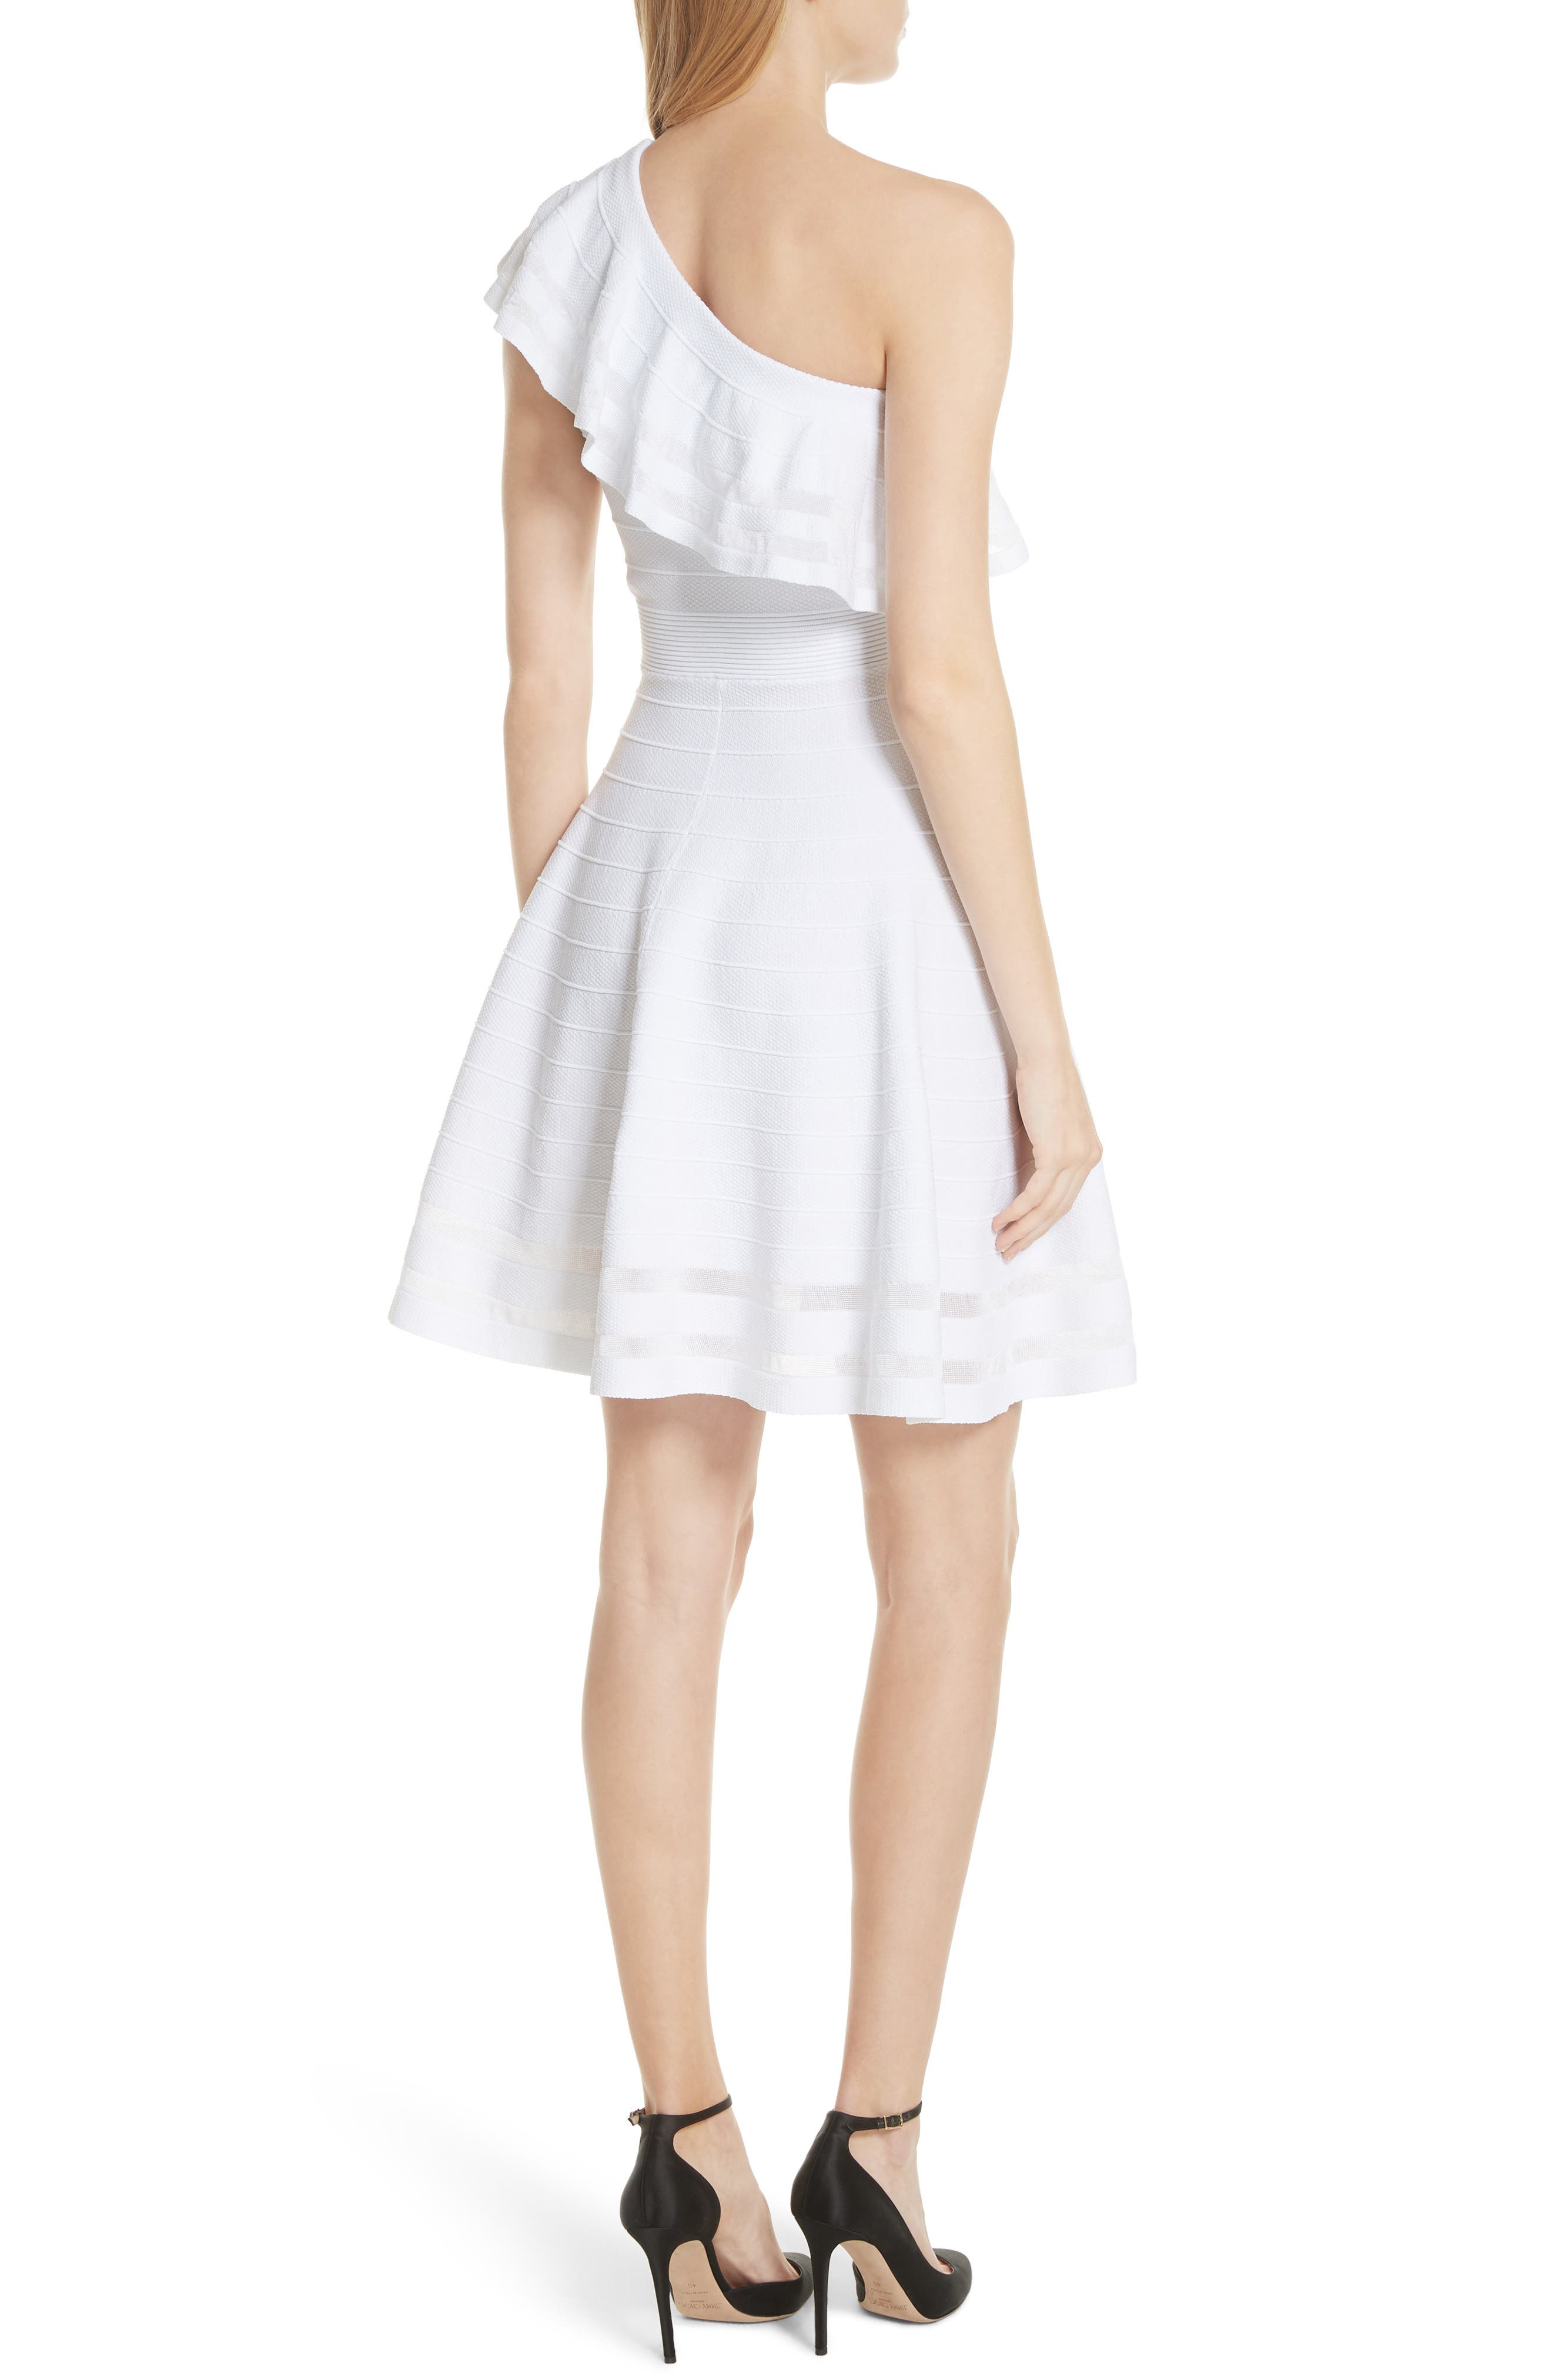 Streena Knit Skater Dress,                             Alternate thumbnail 2, color,                             White